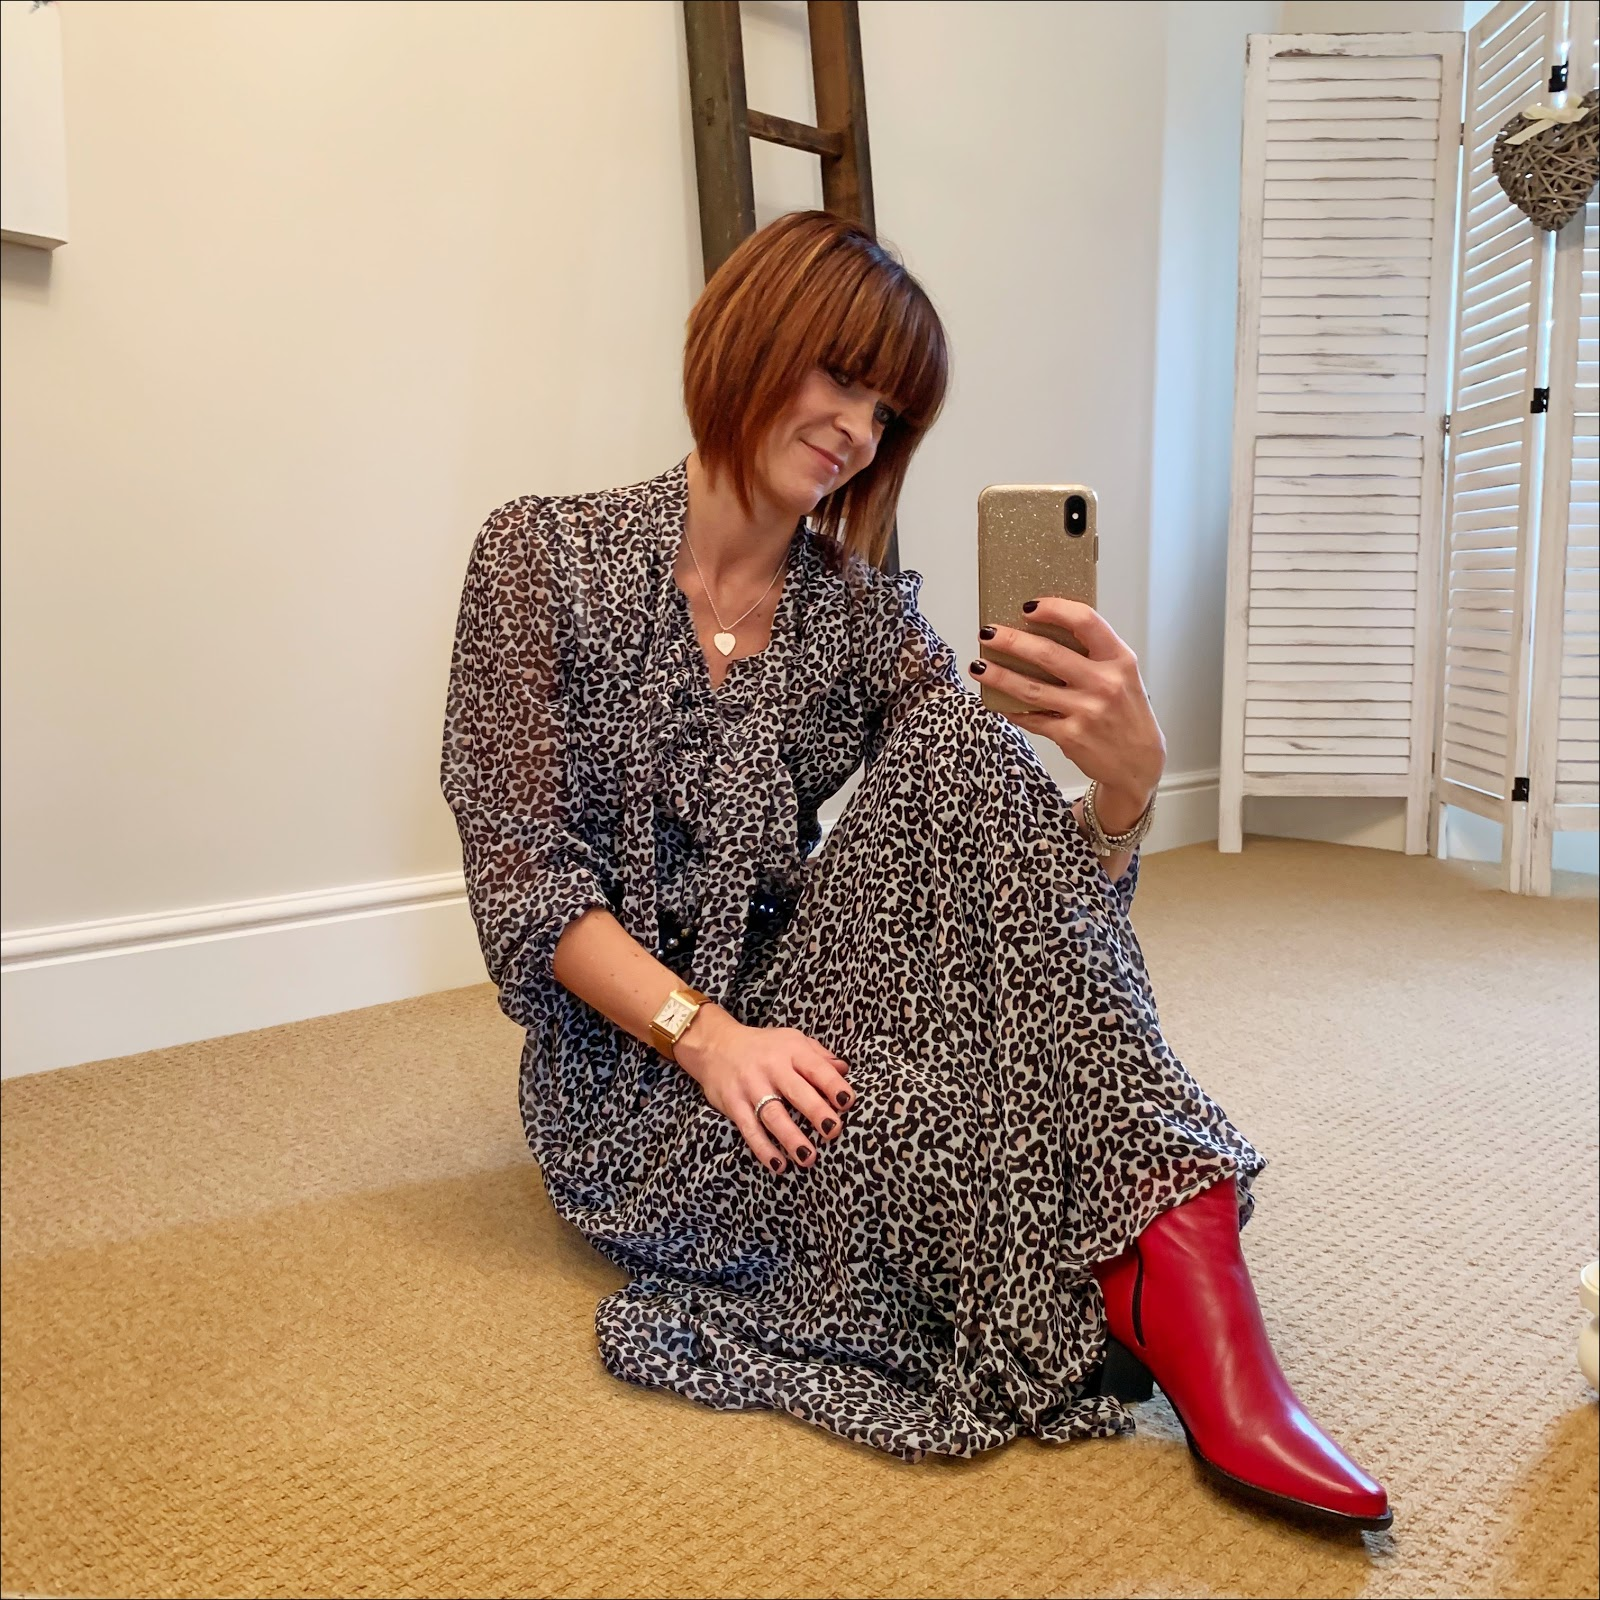 my midlife fashion, lily and lionel leopard print frill detail maxi dress, isabel marant wide studded leather belt, jones bootmaker harriet red soft leather ankle boots